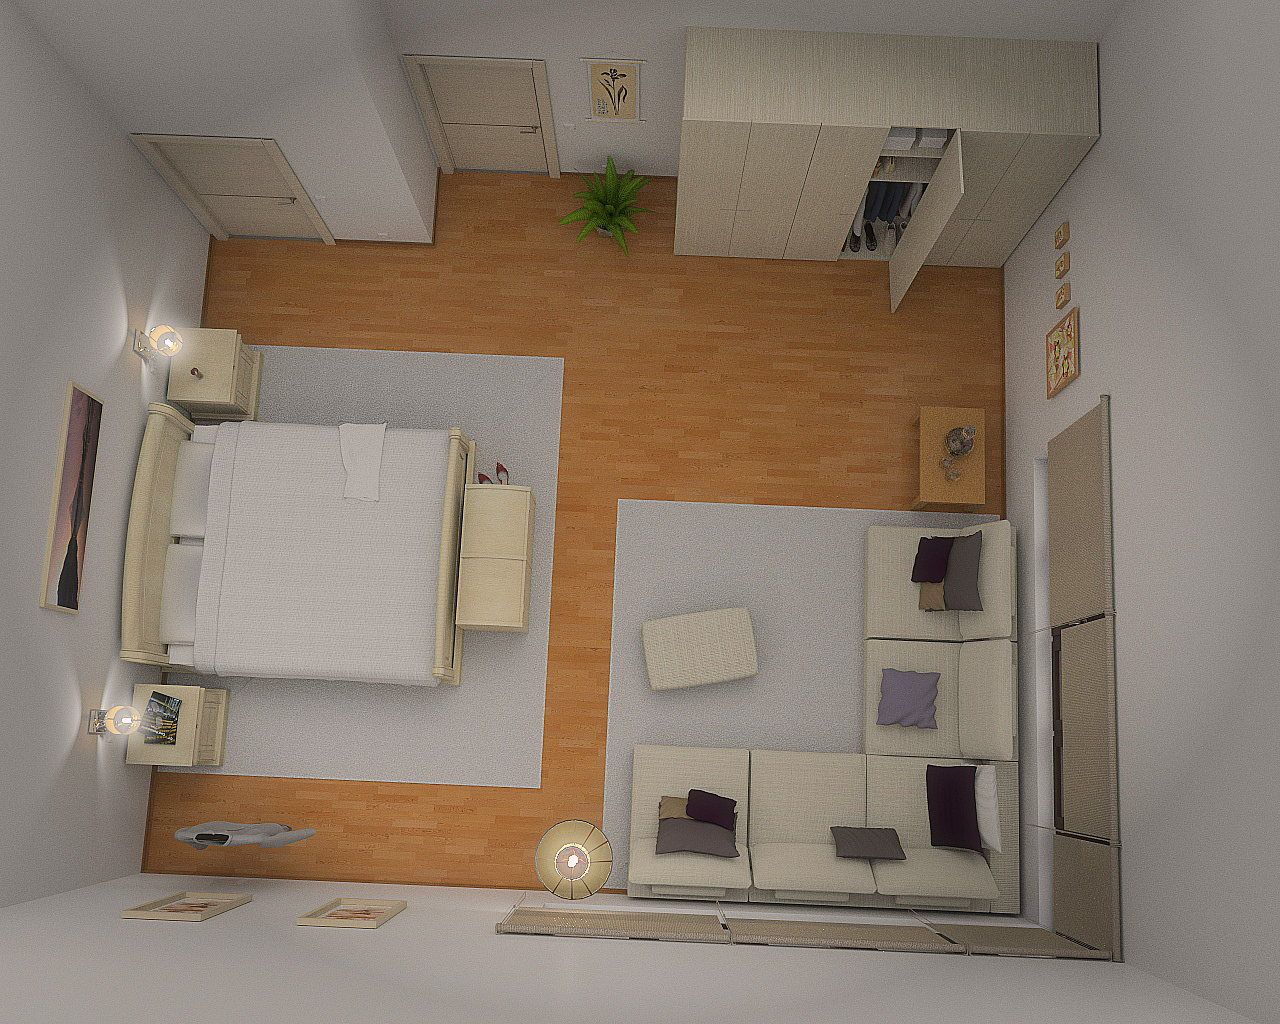 3d interior design models by paz sieiro for 3d decoration models